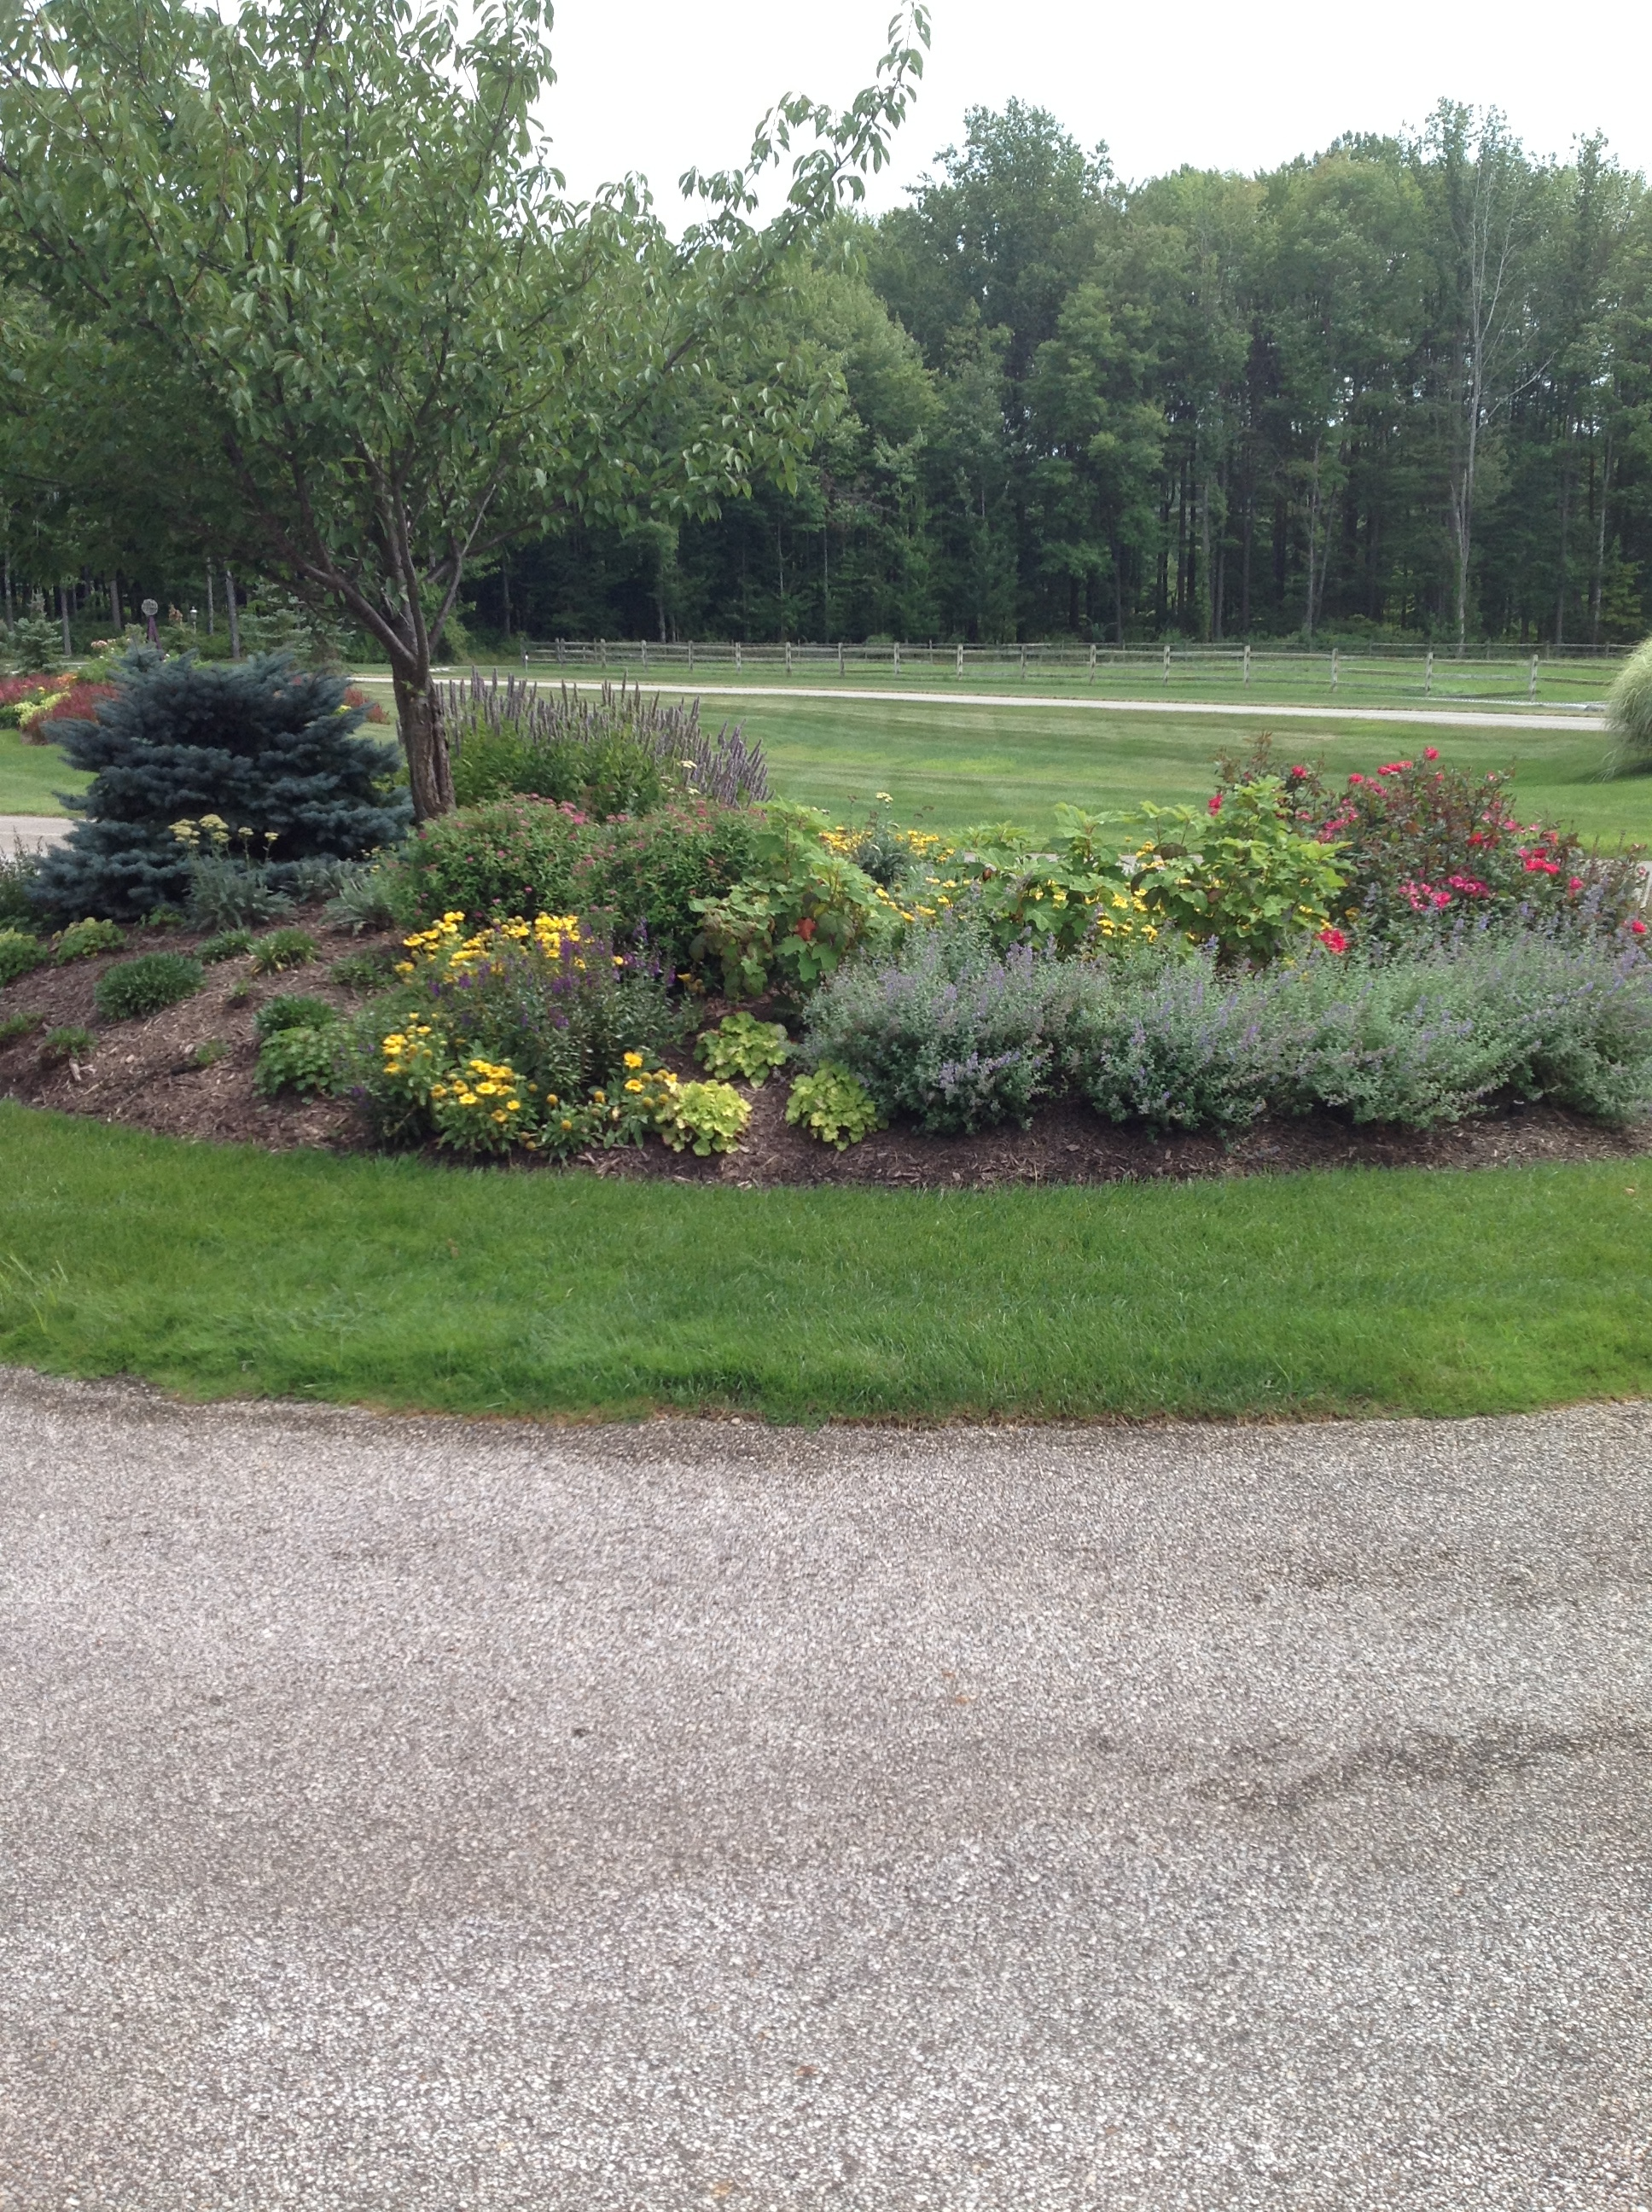 Lawn Care Mistakes That Can Ruin Your Yard in Hudson, OH